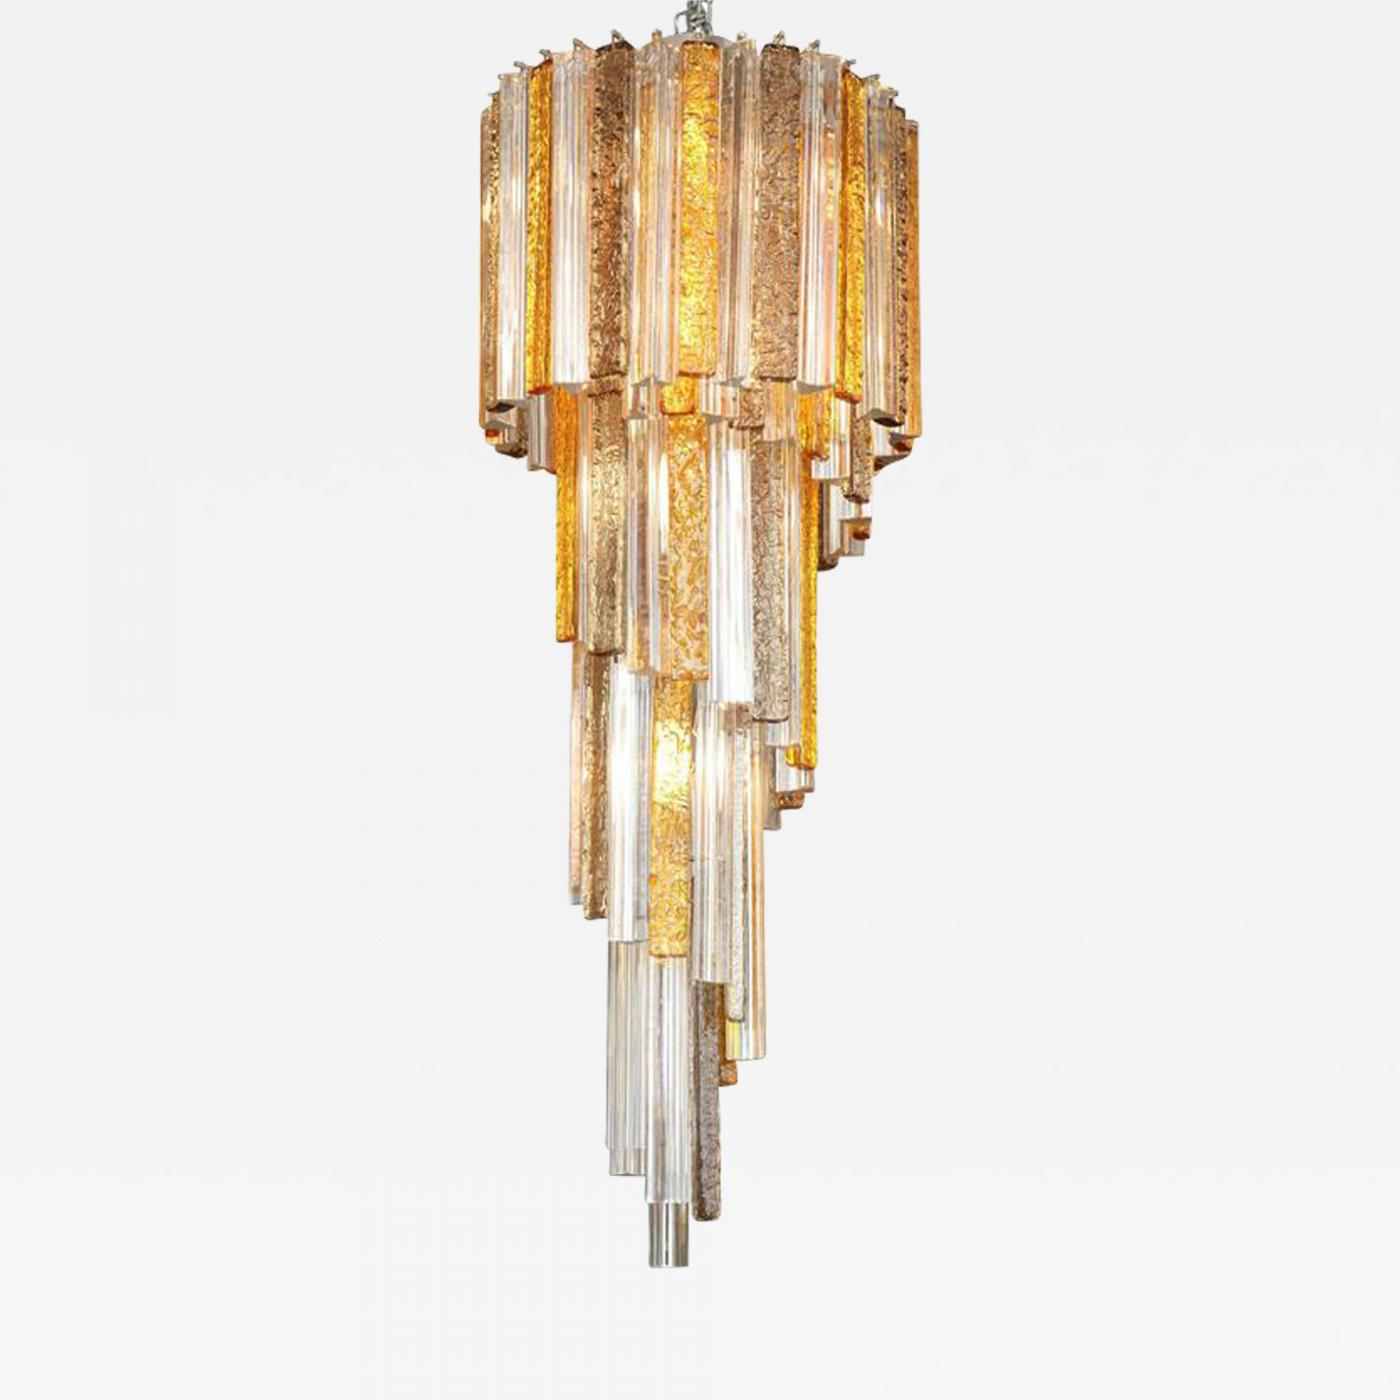 Venini venini chandelier made in venice 1965 listings furniture lighting chandeliers and pendants aloadofball Images